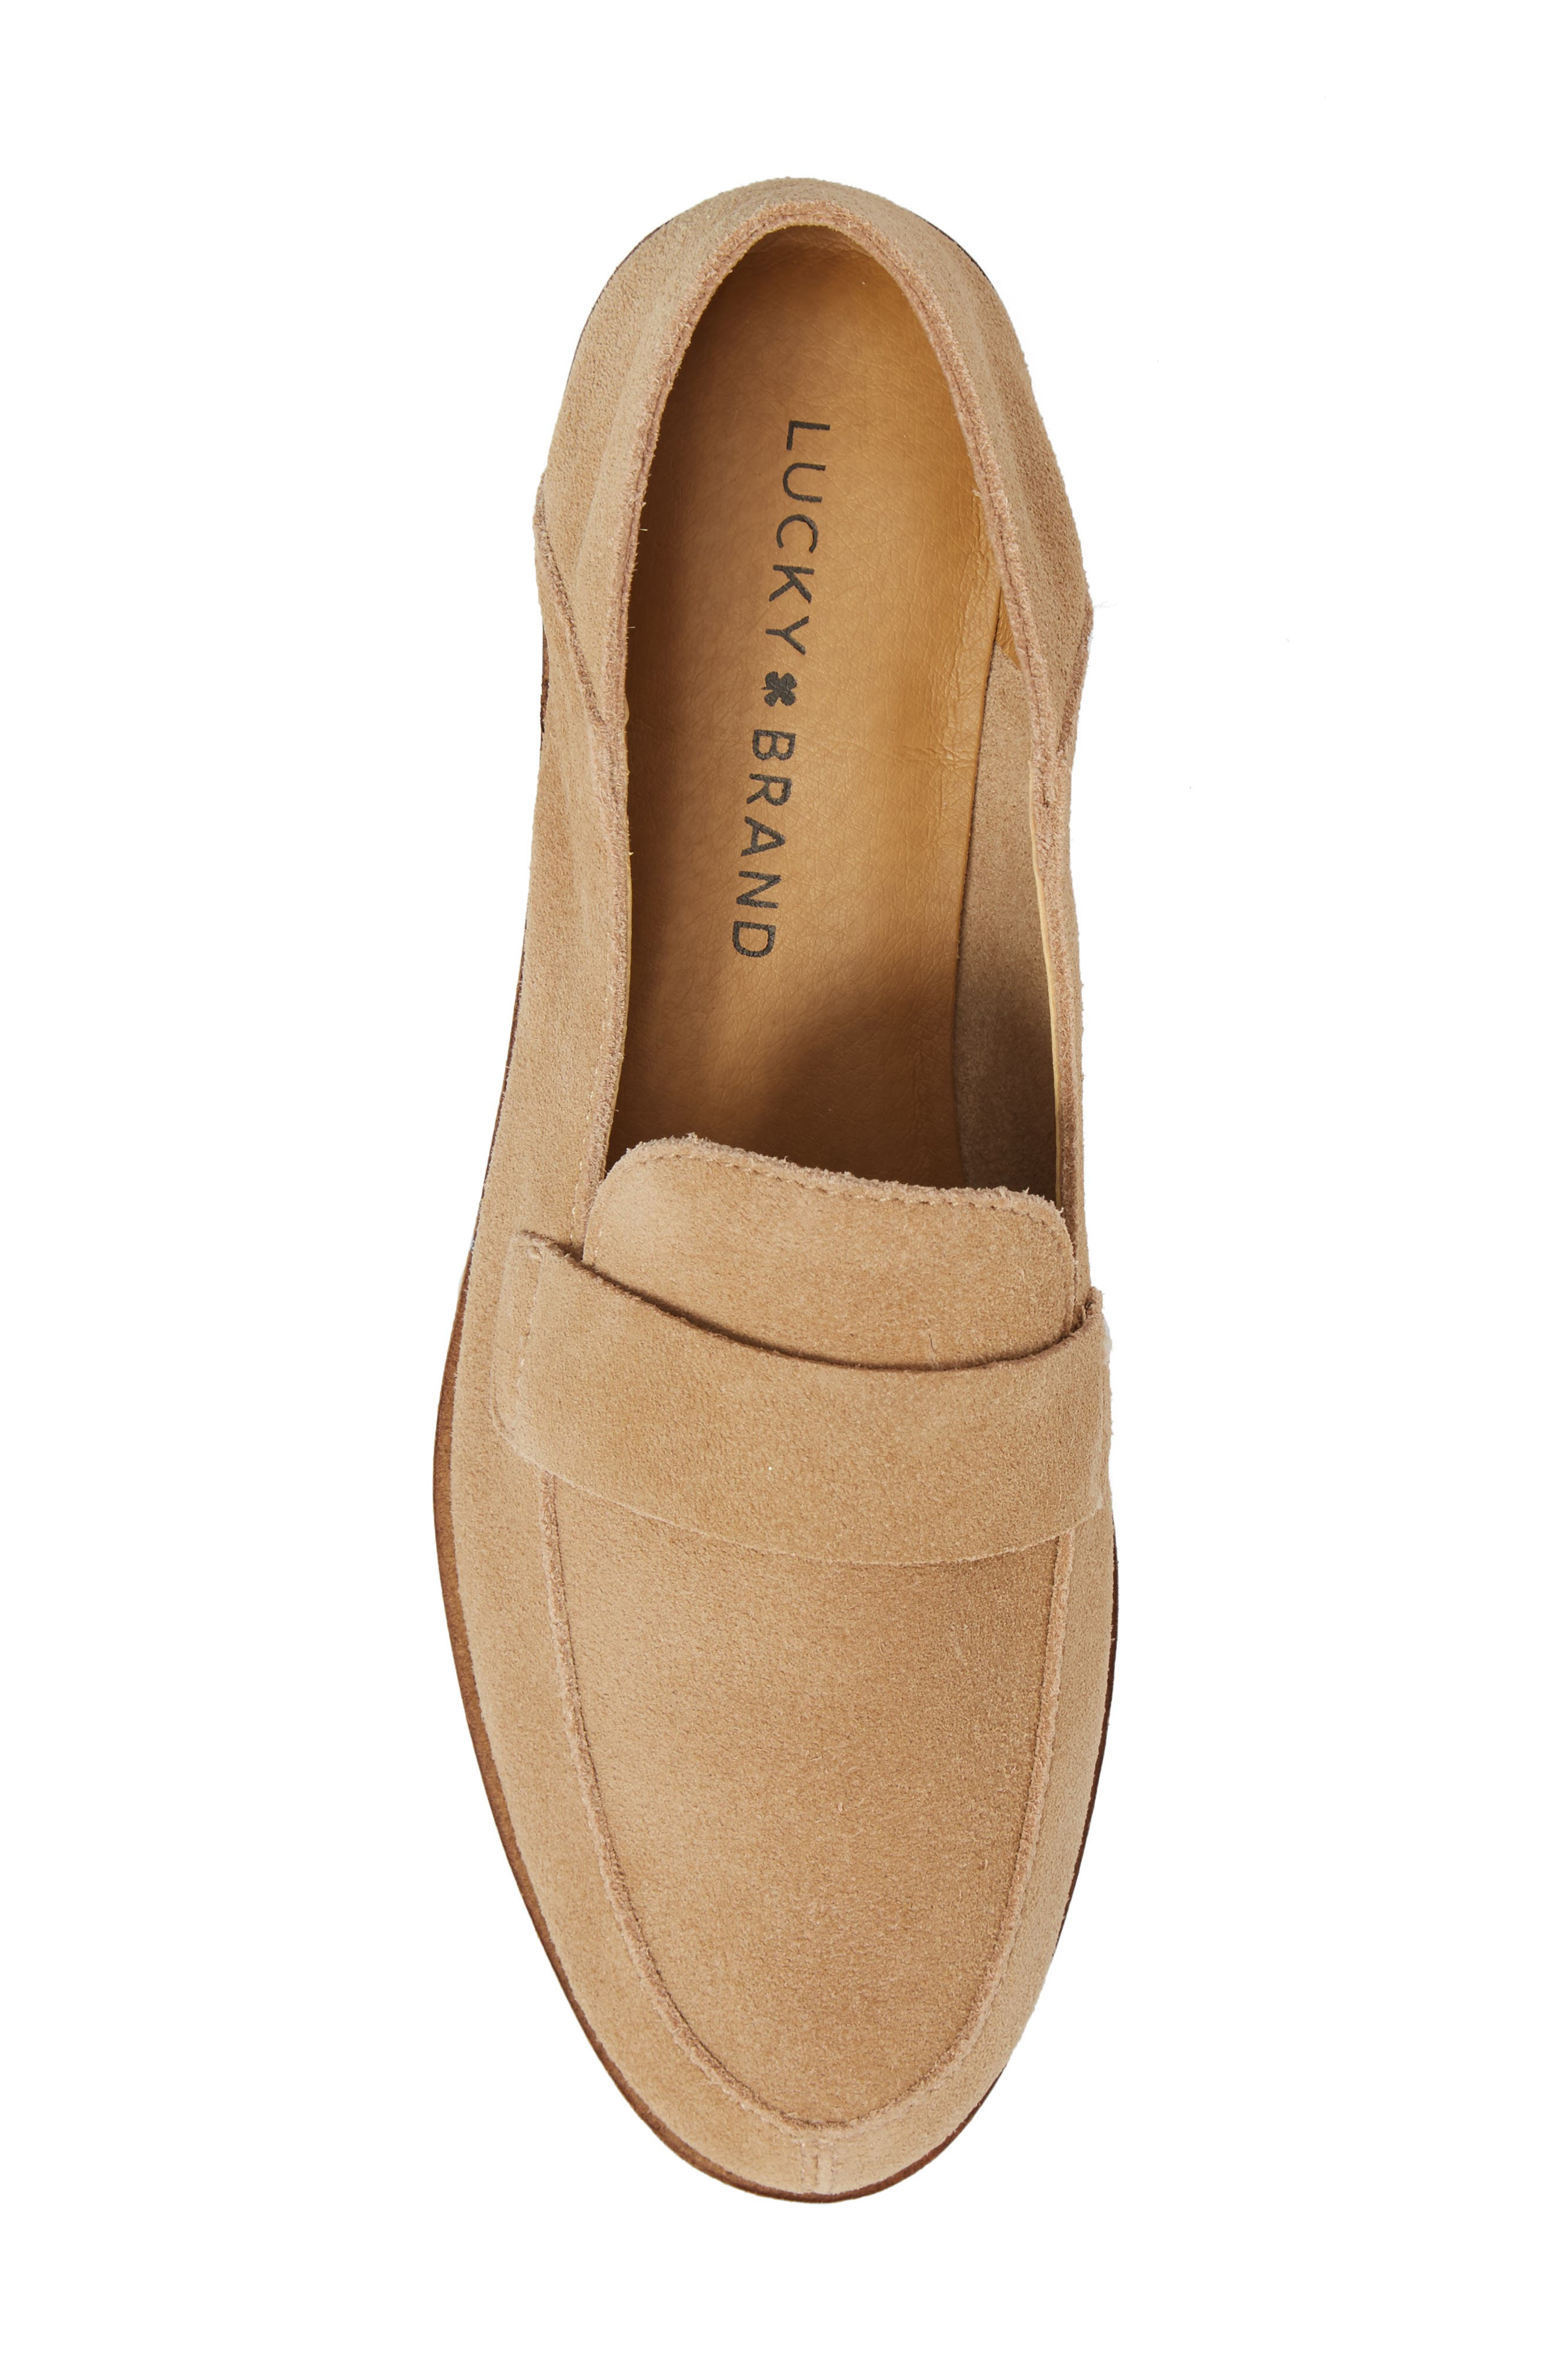 Chennie Loafer,                             Alternate thumbnail 5, color,                             Travertine Suede